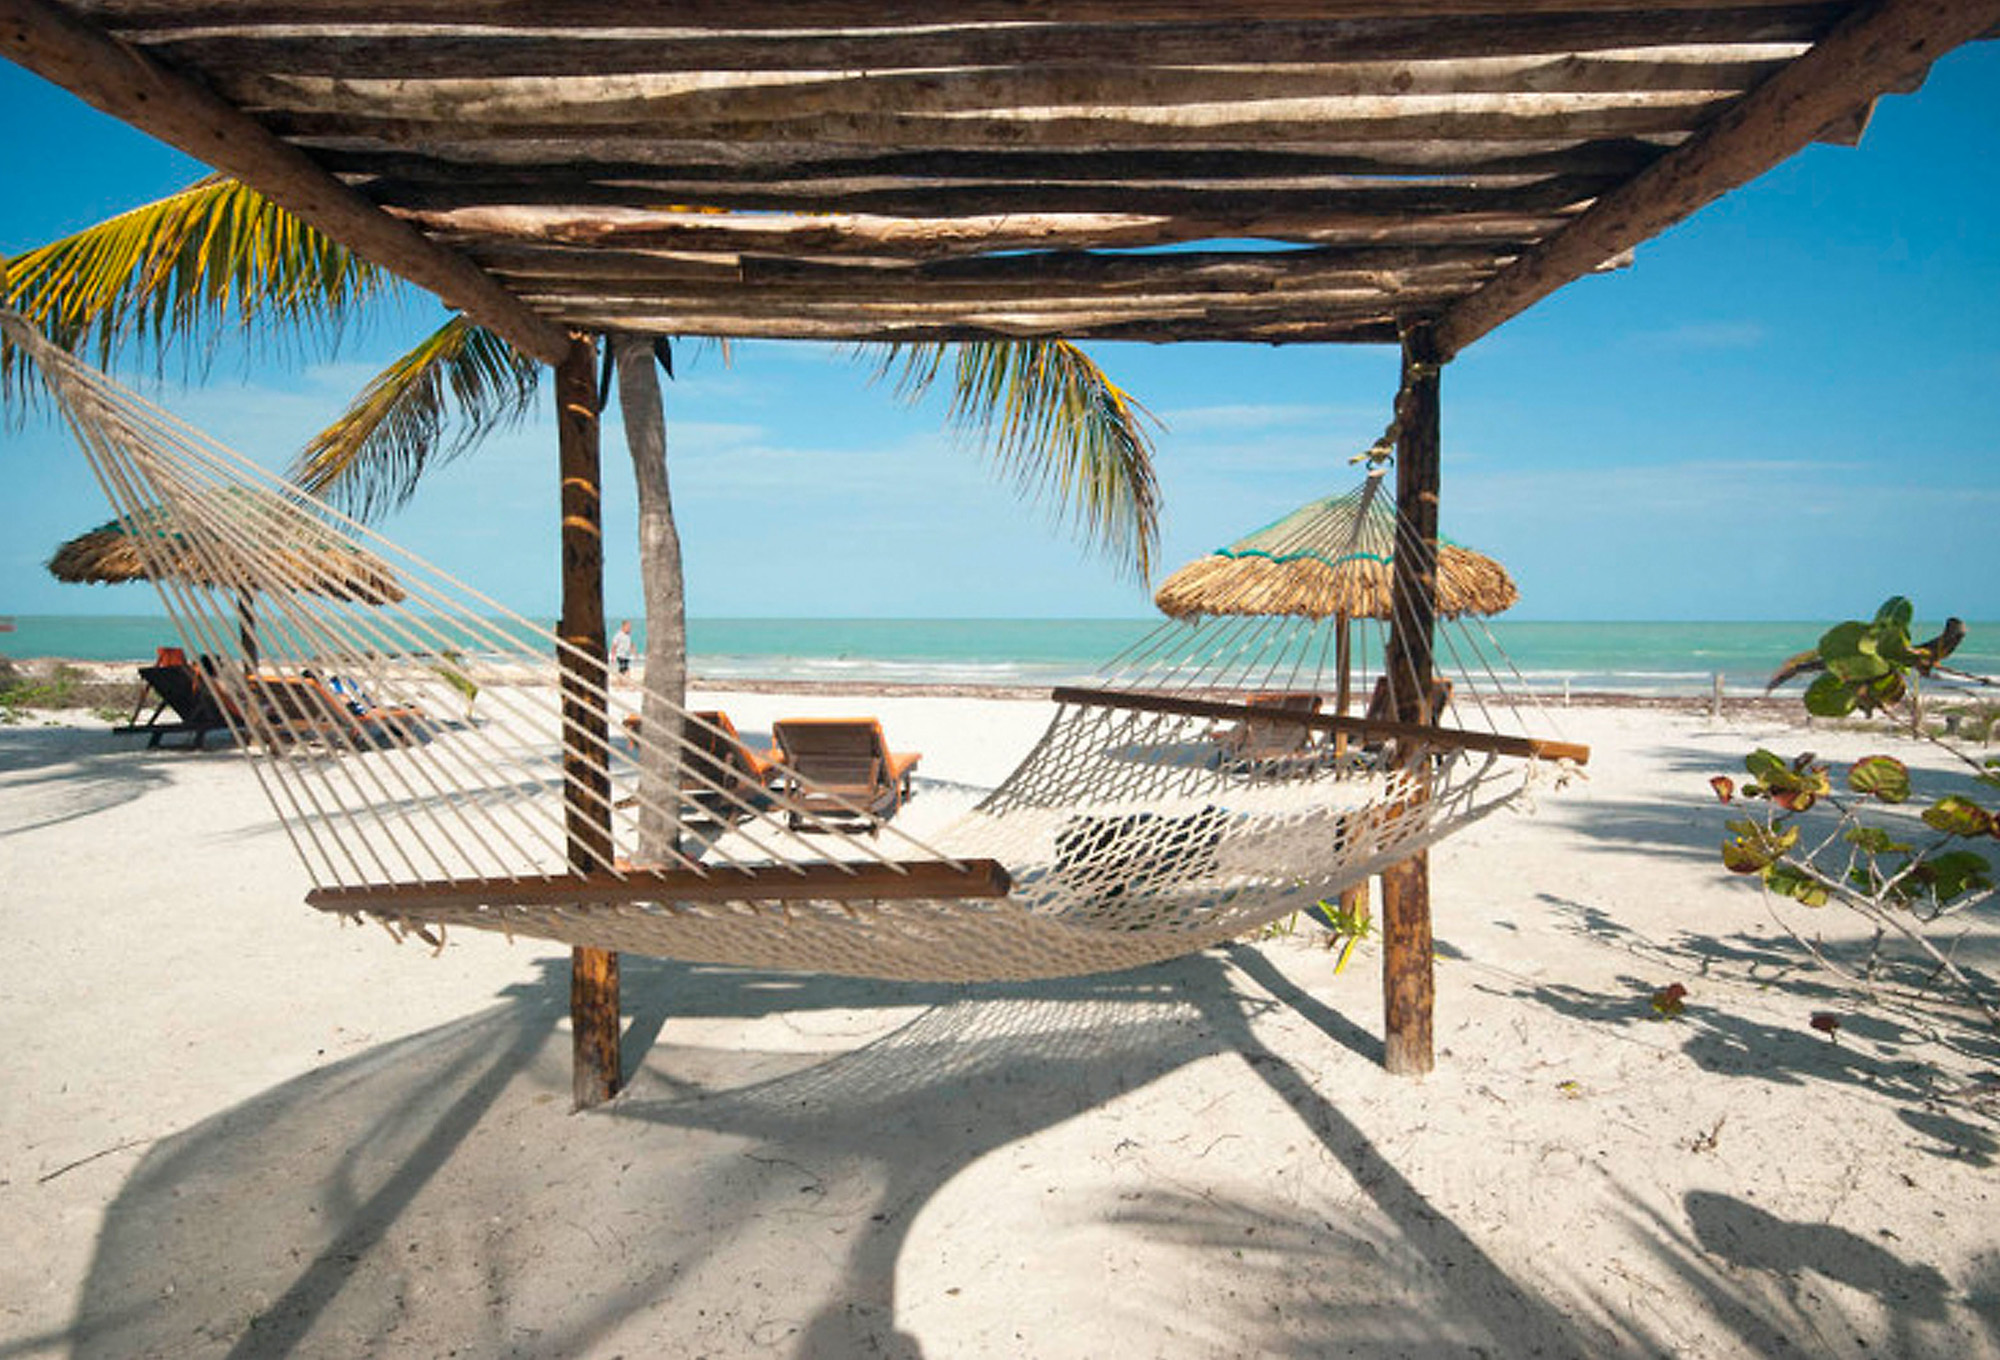 A hammock slung under shade looking out to the beach and sea at Hotel Zomay, Isla Holbox, Mexico